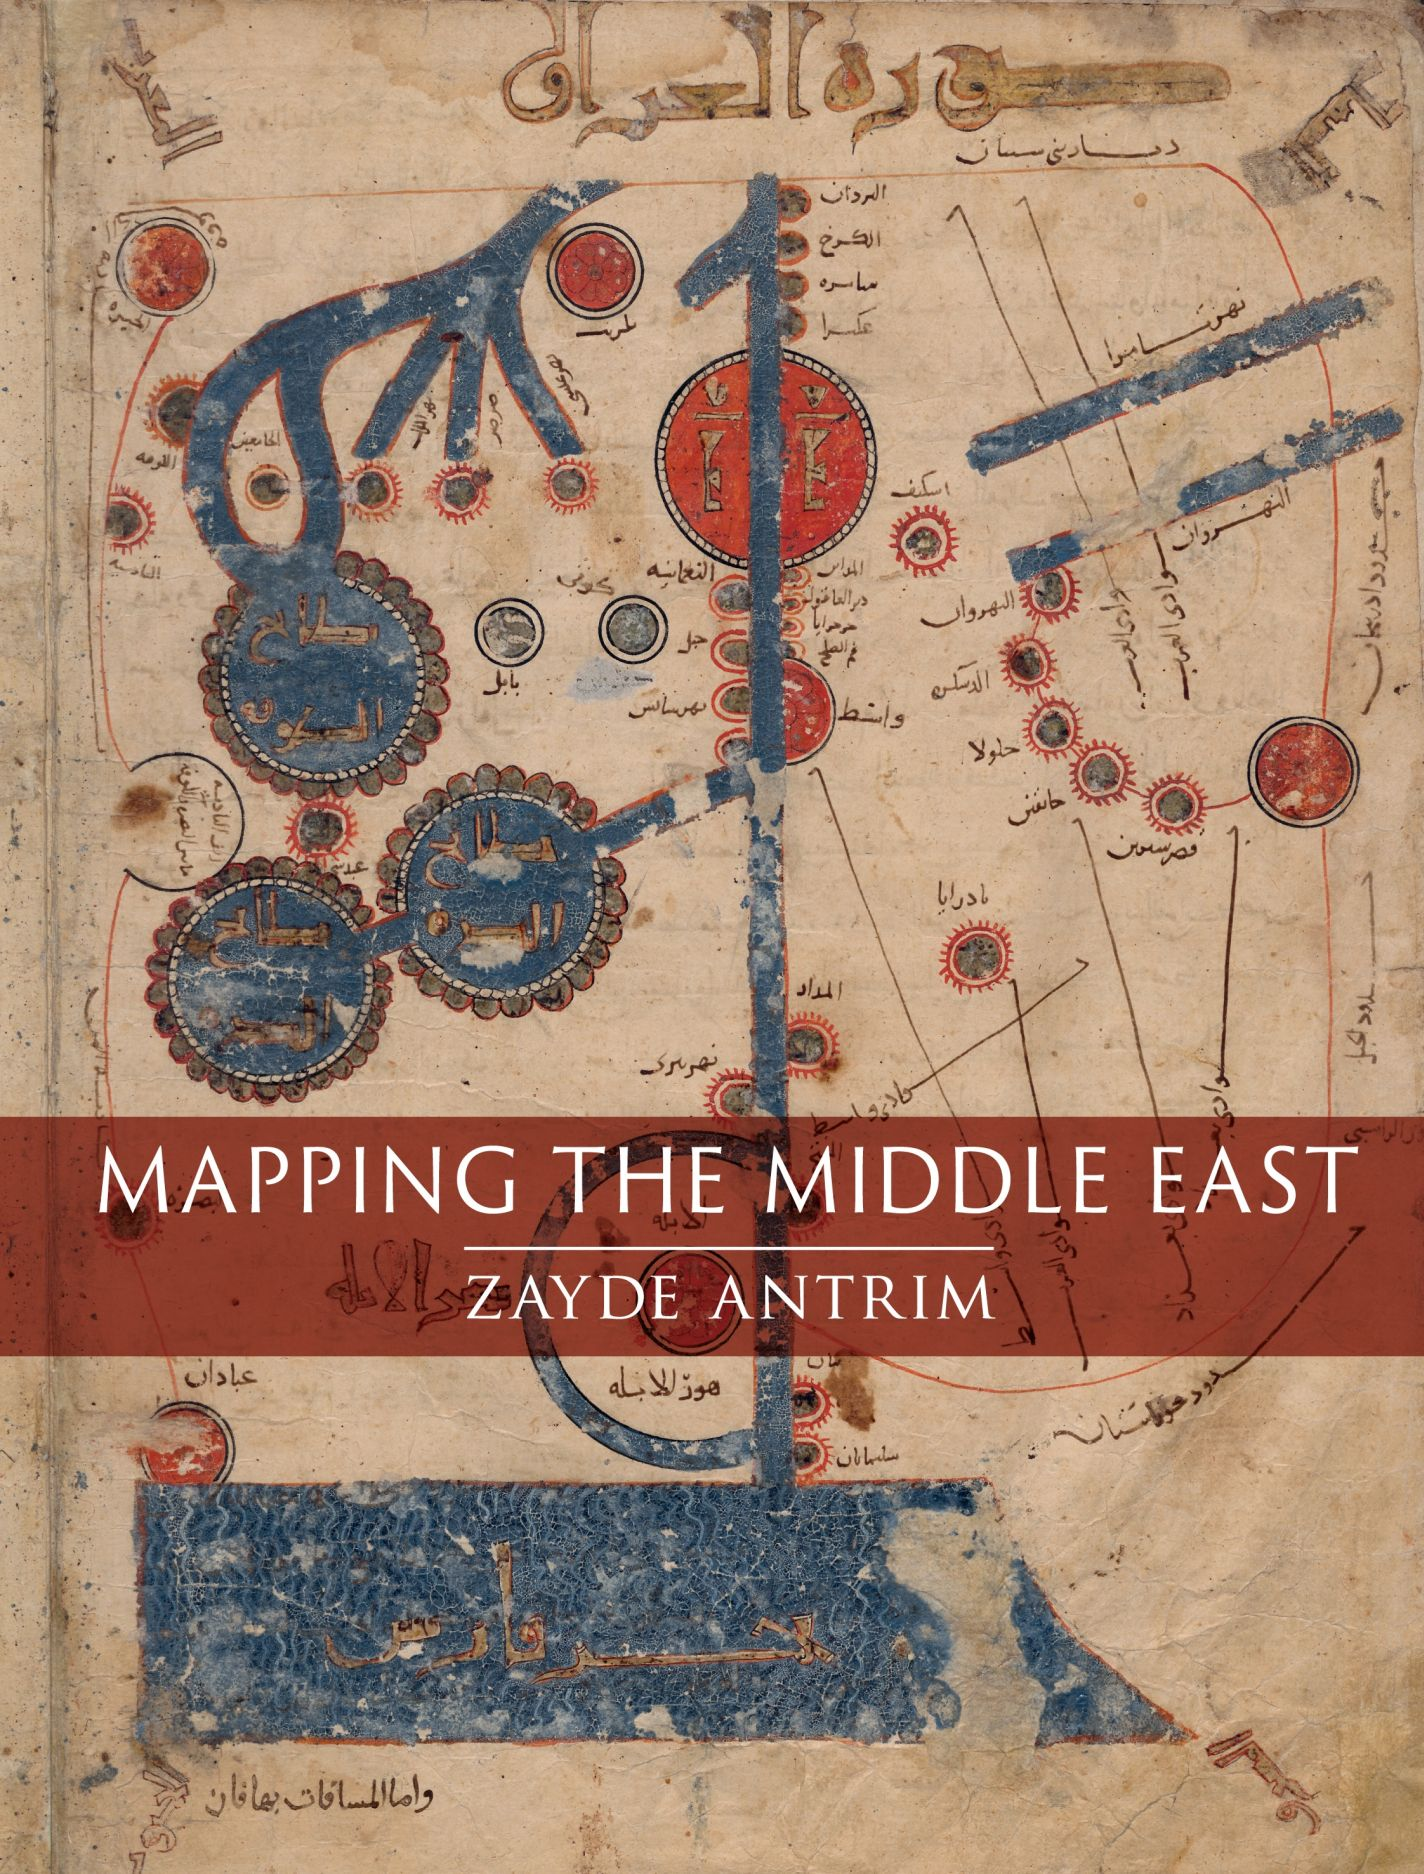 Mapping the Middle East